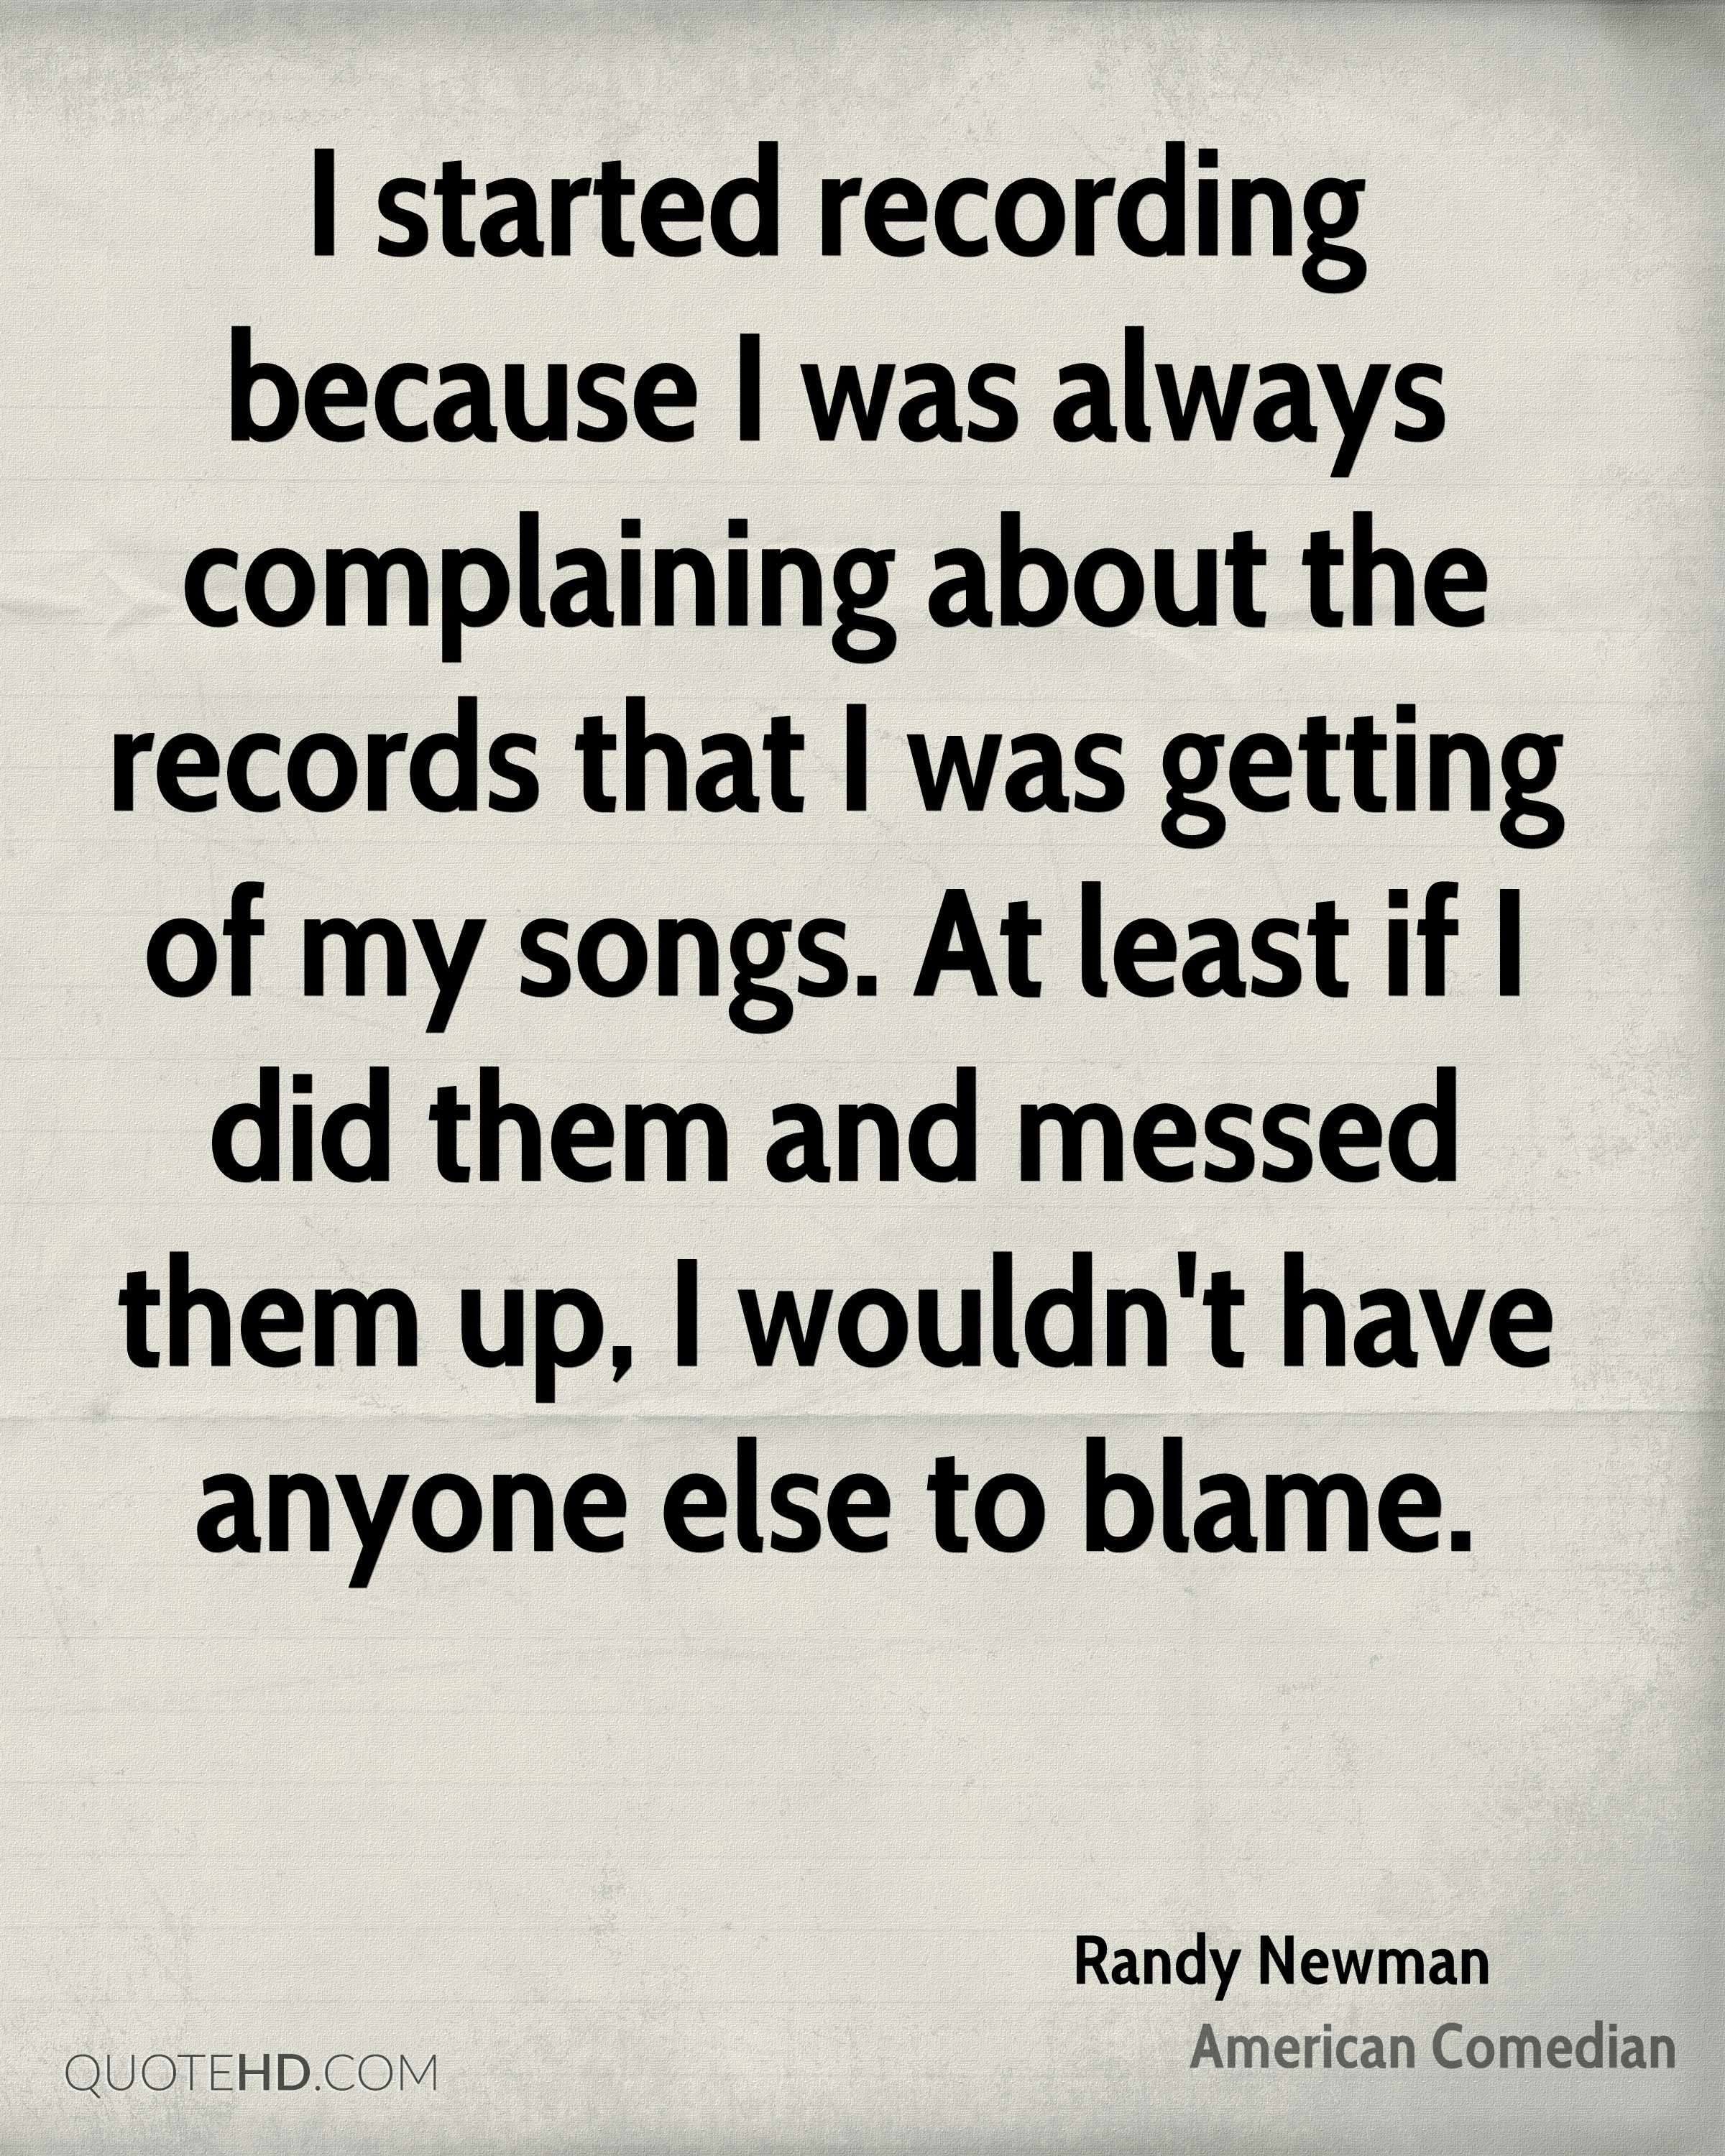 I started recording because I was always complaining about the records that I was getting of my songs. At least if I did them and messed them up, I wouldn't have anyone else to blame.